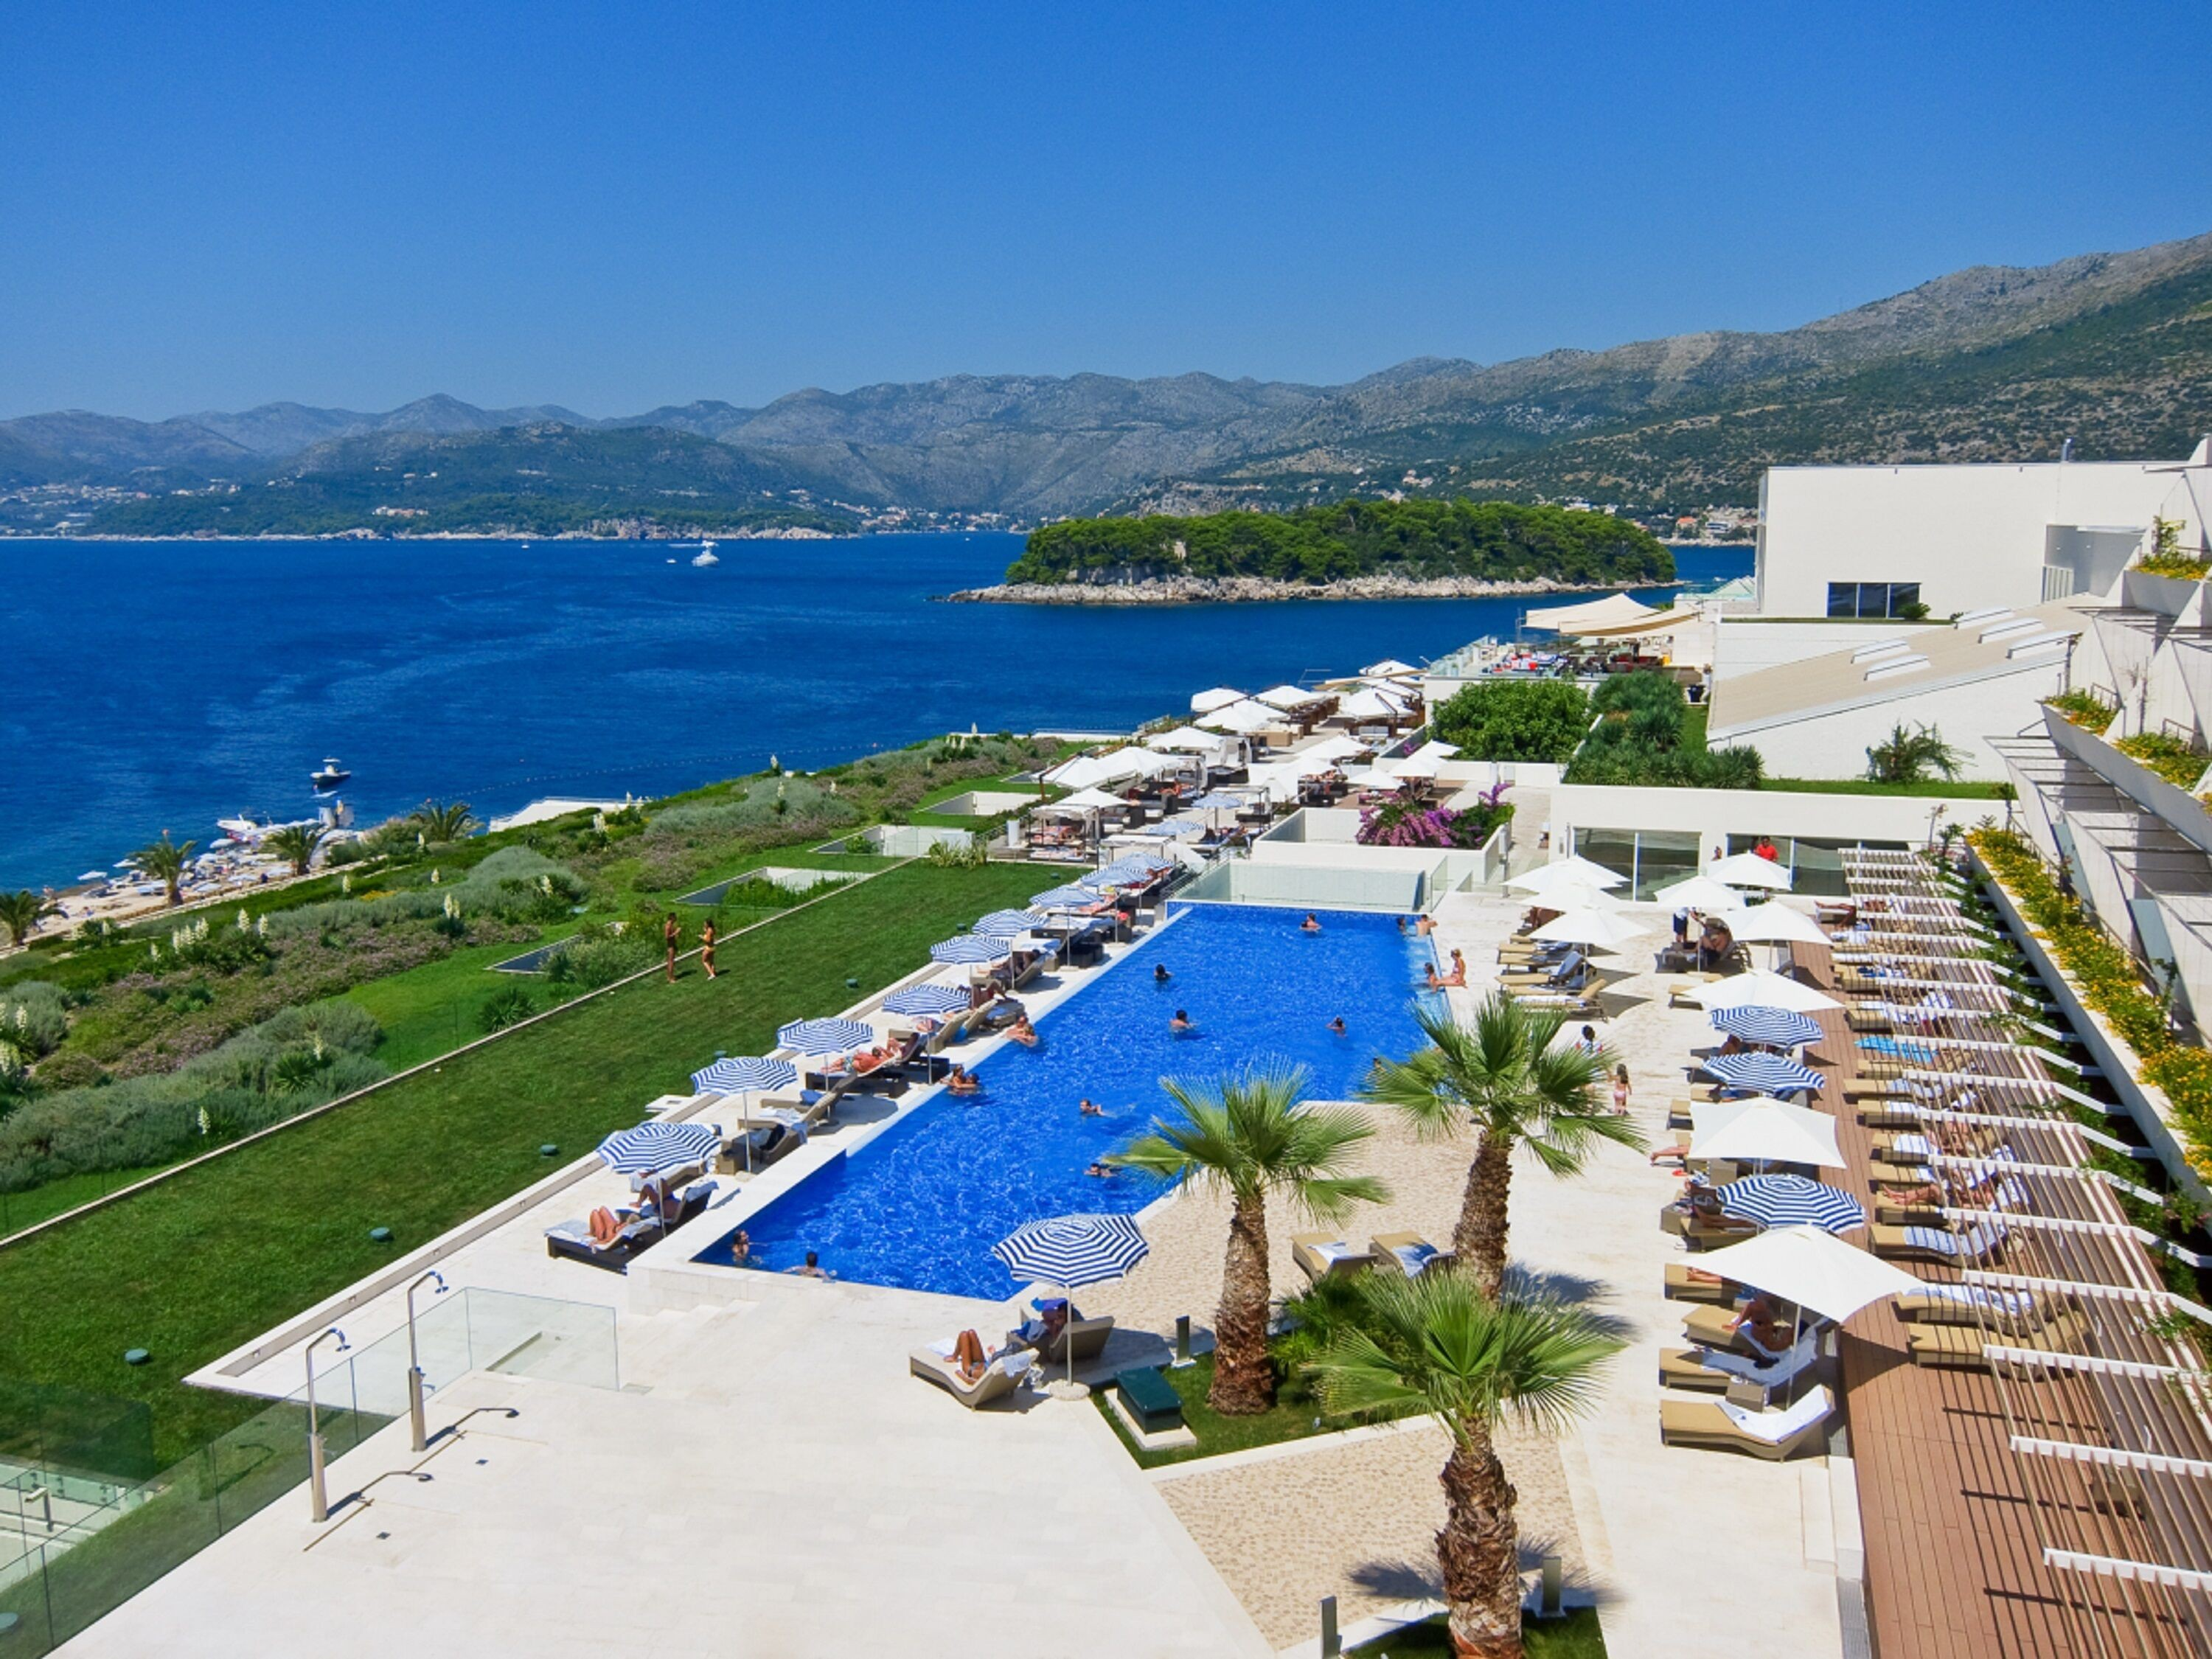 Courtesy of Valamar Collection Dubrovnik President Hotel / Expedia